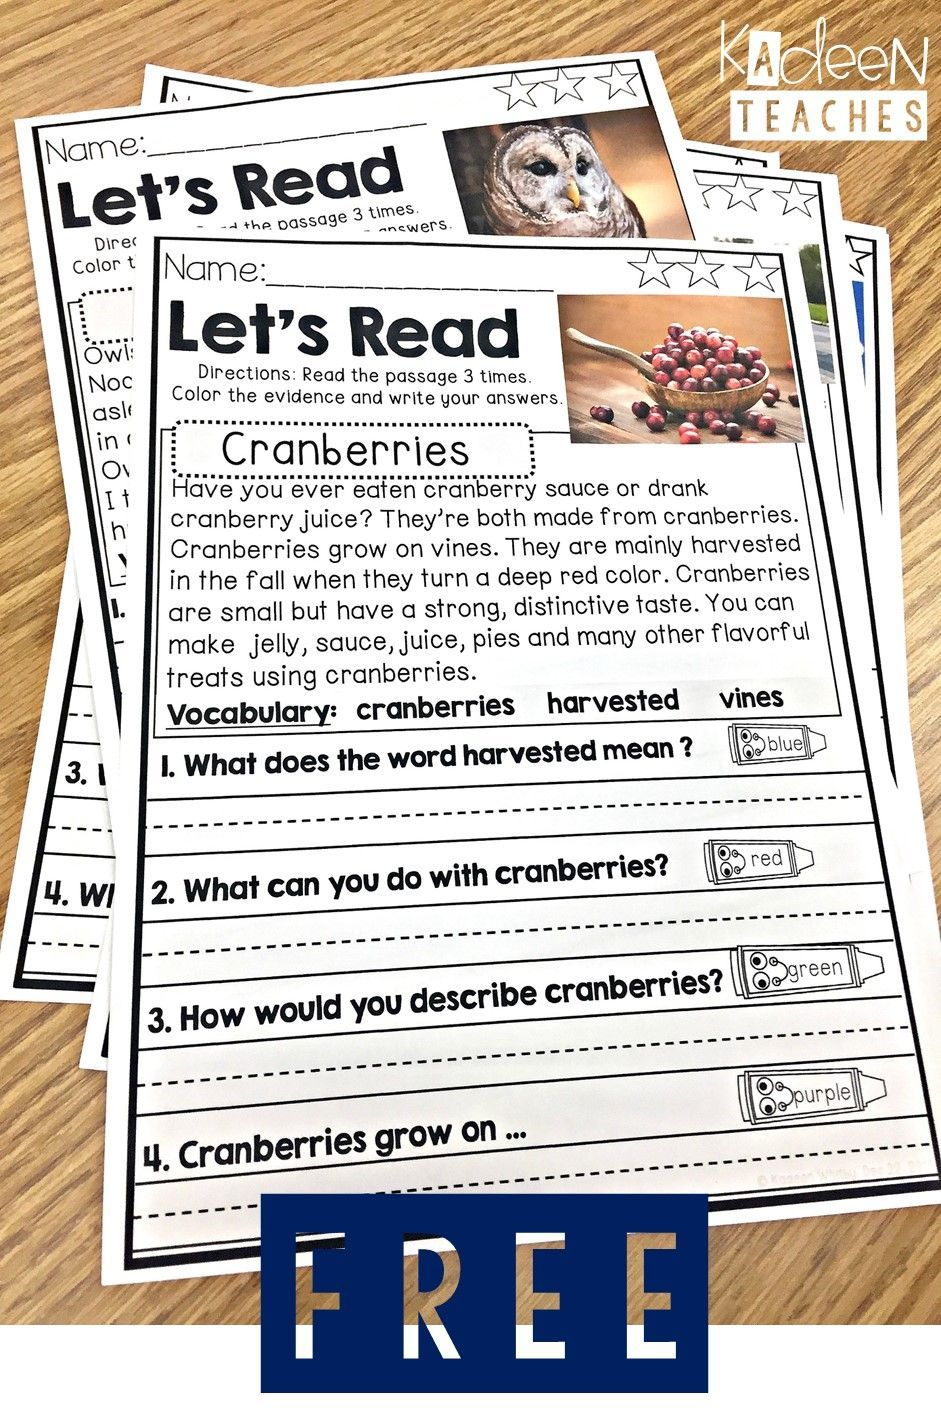 Free Reading Comprehension Passages Reading Tutoring Third Grade Reading Reading Comprehension Passages [ 1410 x 941 Pixel ]